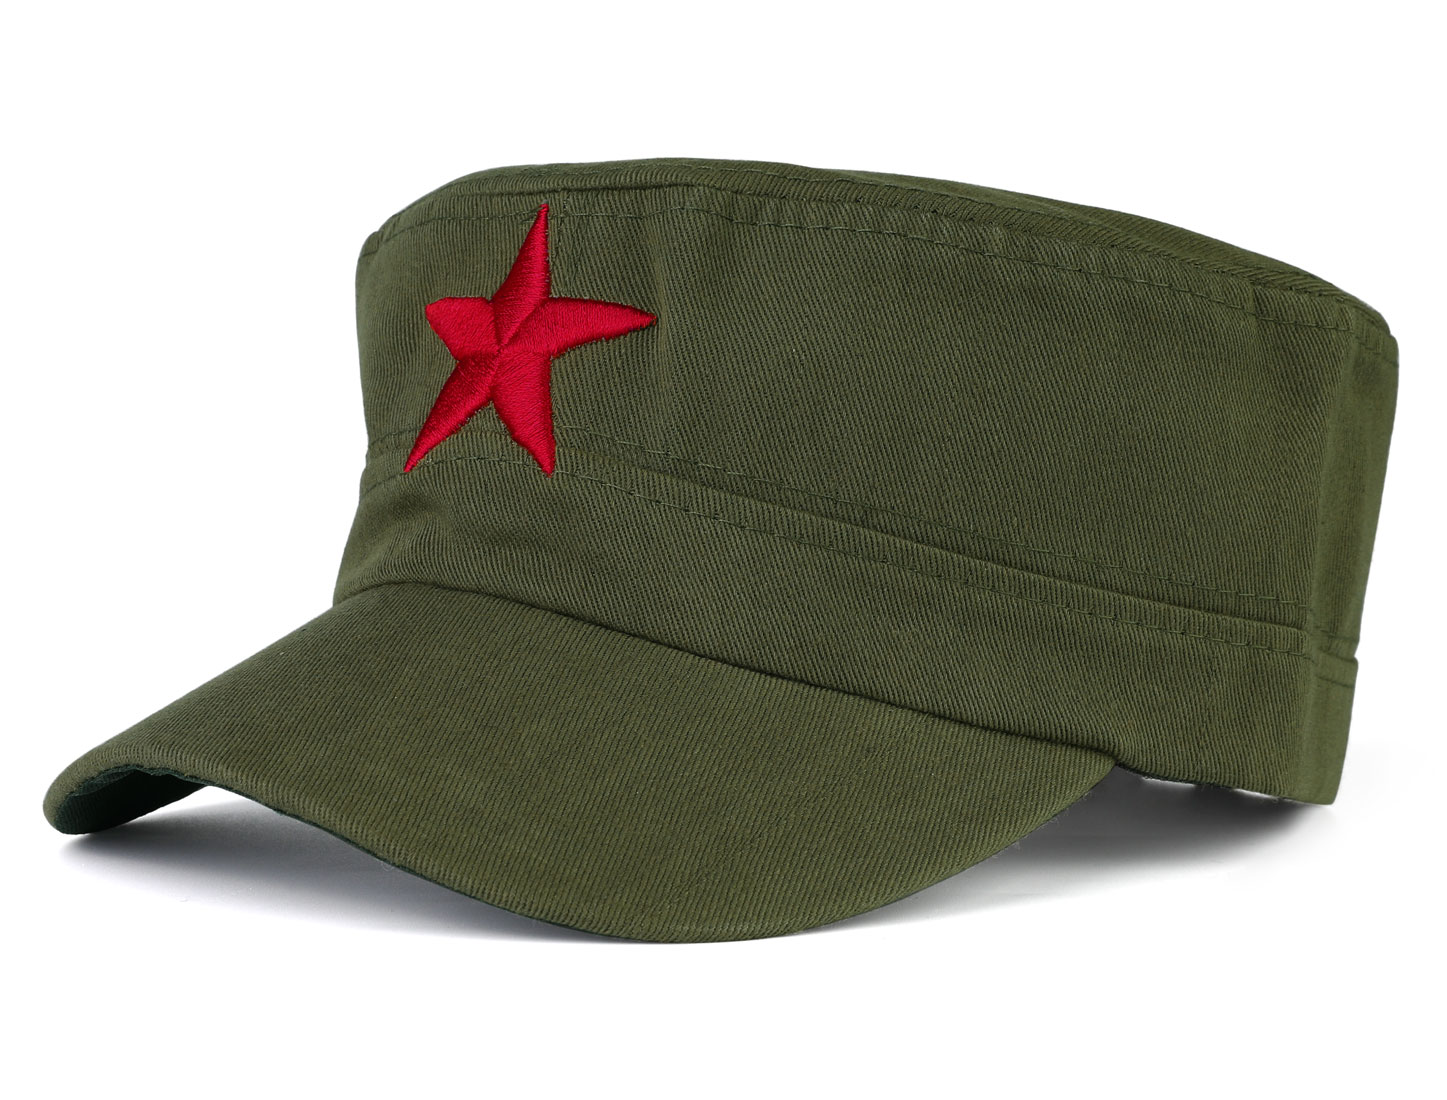 Man Trucker Red Star Detail Sun Visor Baseball Cap Hat Army Green